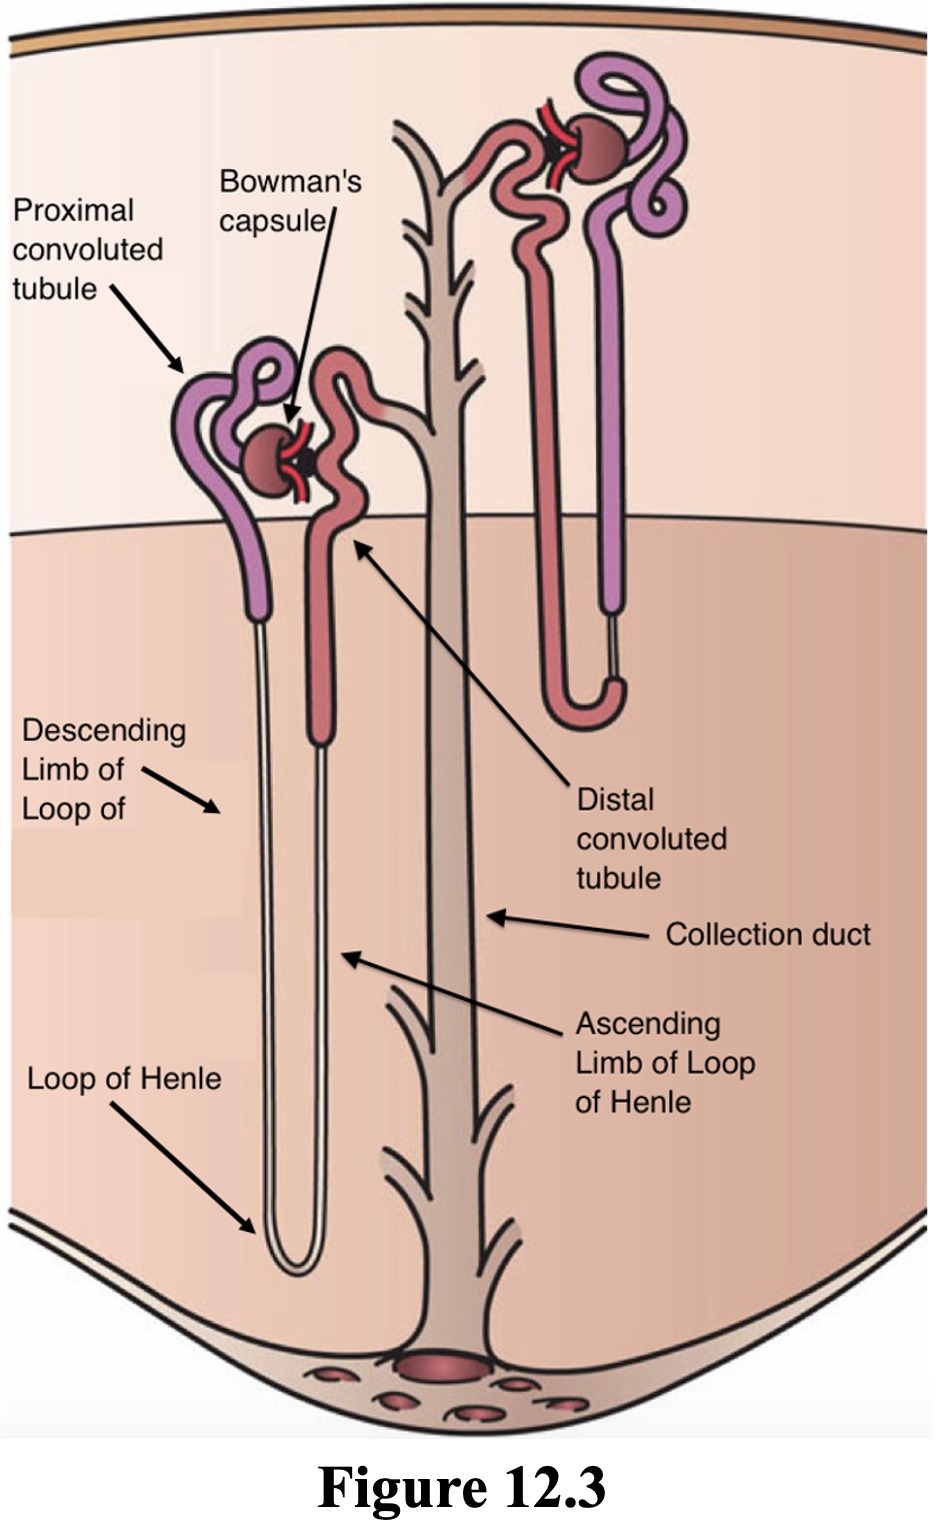 Figure 12.3 highlights the 3 main parts of a nephron; 1) The glomerulus, a ball of capillaries that bring blood to be filtered to the renal tubules: located in the cortex. 2) The Bowman's capsule, the cup-shaped structure which surrounds the glomerulus and receives the filtrate from the glomerulus. 3) The renal tubules, including the convoluted tubules (proximal and distal) and the Loop of Henle, where nutrients are selectively reabsorbed into the blood while wastes are left behind in collecting tubules for eventual excretion as urine.  •  Bowman's capsule is the start of the renal tubules. It encases glomerulus and is located in the cortex • The proximal convoluted tubule is the coiled first section of the renal tubules and is located in the cortex.  •  The Loop of Henle is the straight section of renal tubules that dip down via the descending loop of Henle, into the medulla and then back up, via the ascending loop of Henle, into the cortex. • The distal convoluted tubule is the coiled third section if the renal tubules also located in the cortex. • The collecting ducts receive urine from the renal tubules.  • The Peritubular capillary network is a network of capillaries that surround renal tubules and aid in absorption and secretion of substances to adjust the contents of the urine and the blood.